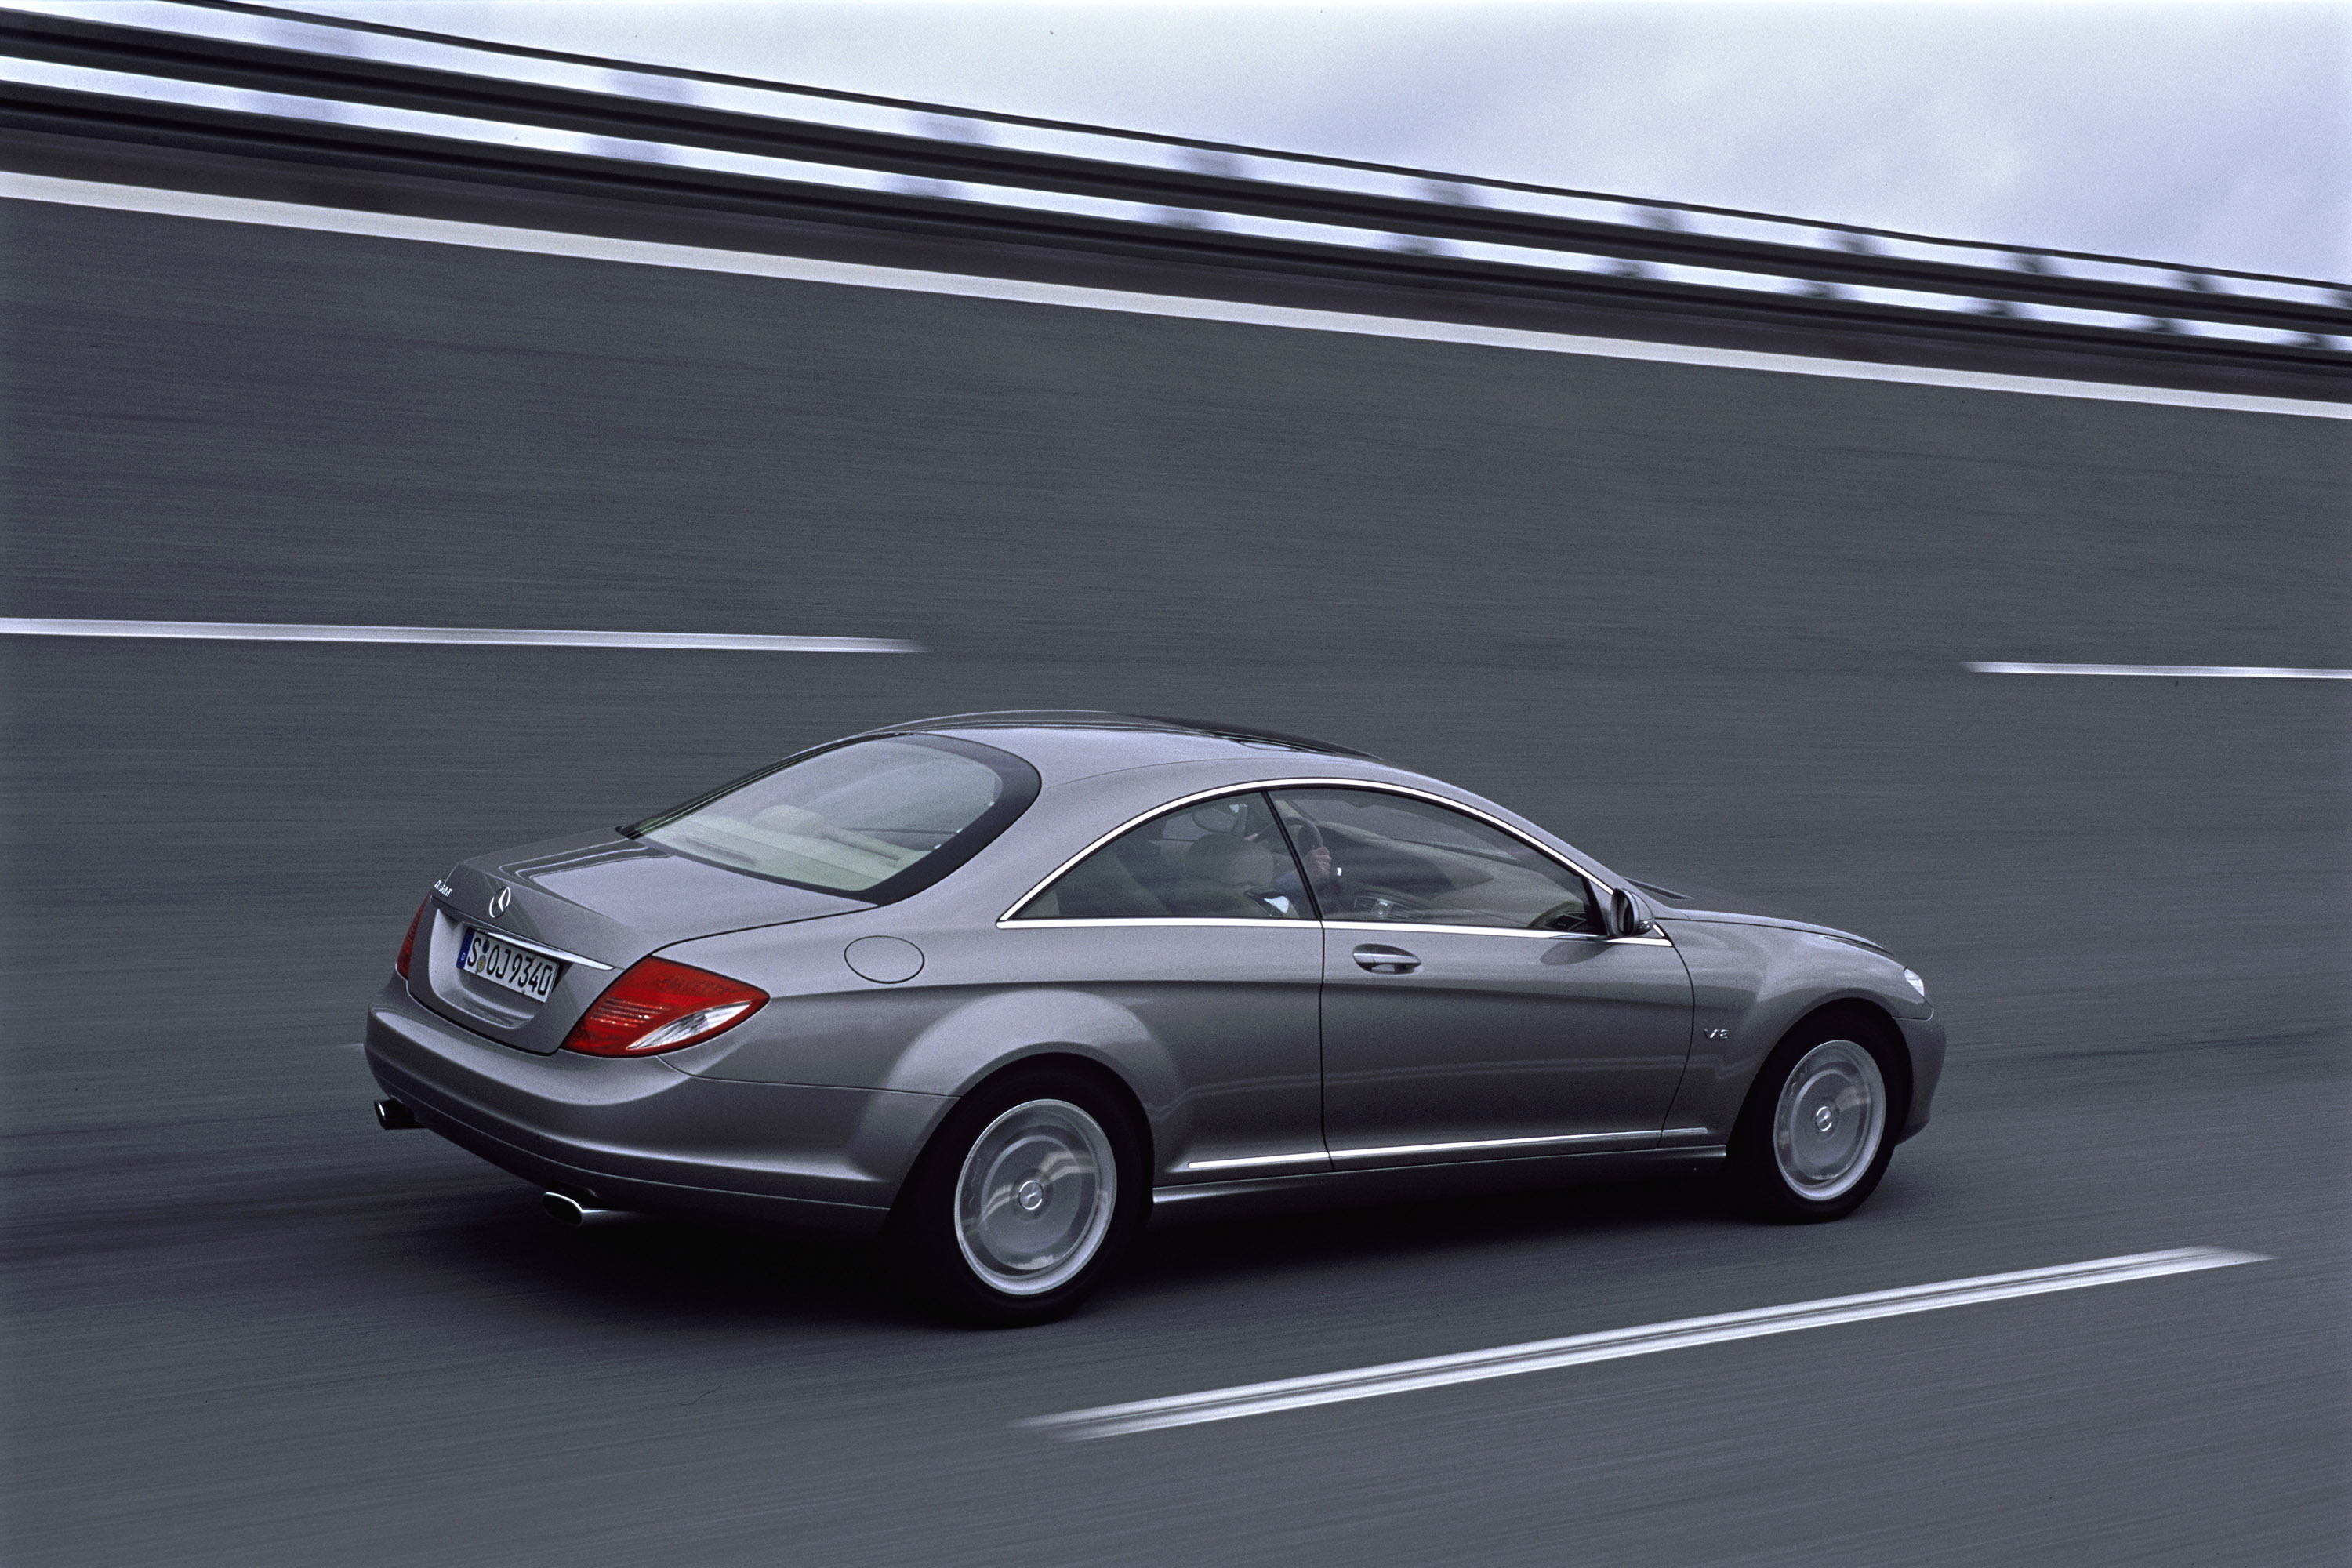 2007 mercedes benz cl600 picture 93758 for Mercedes benz cl500 review